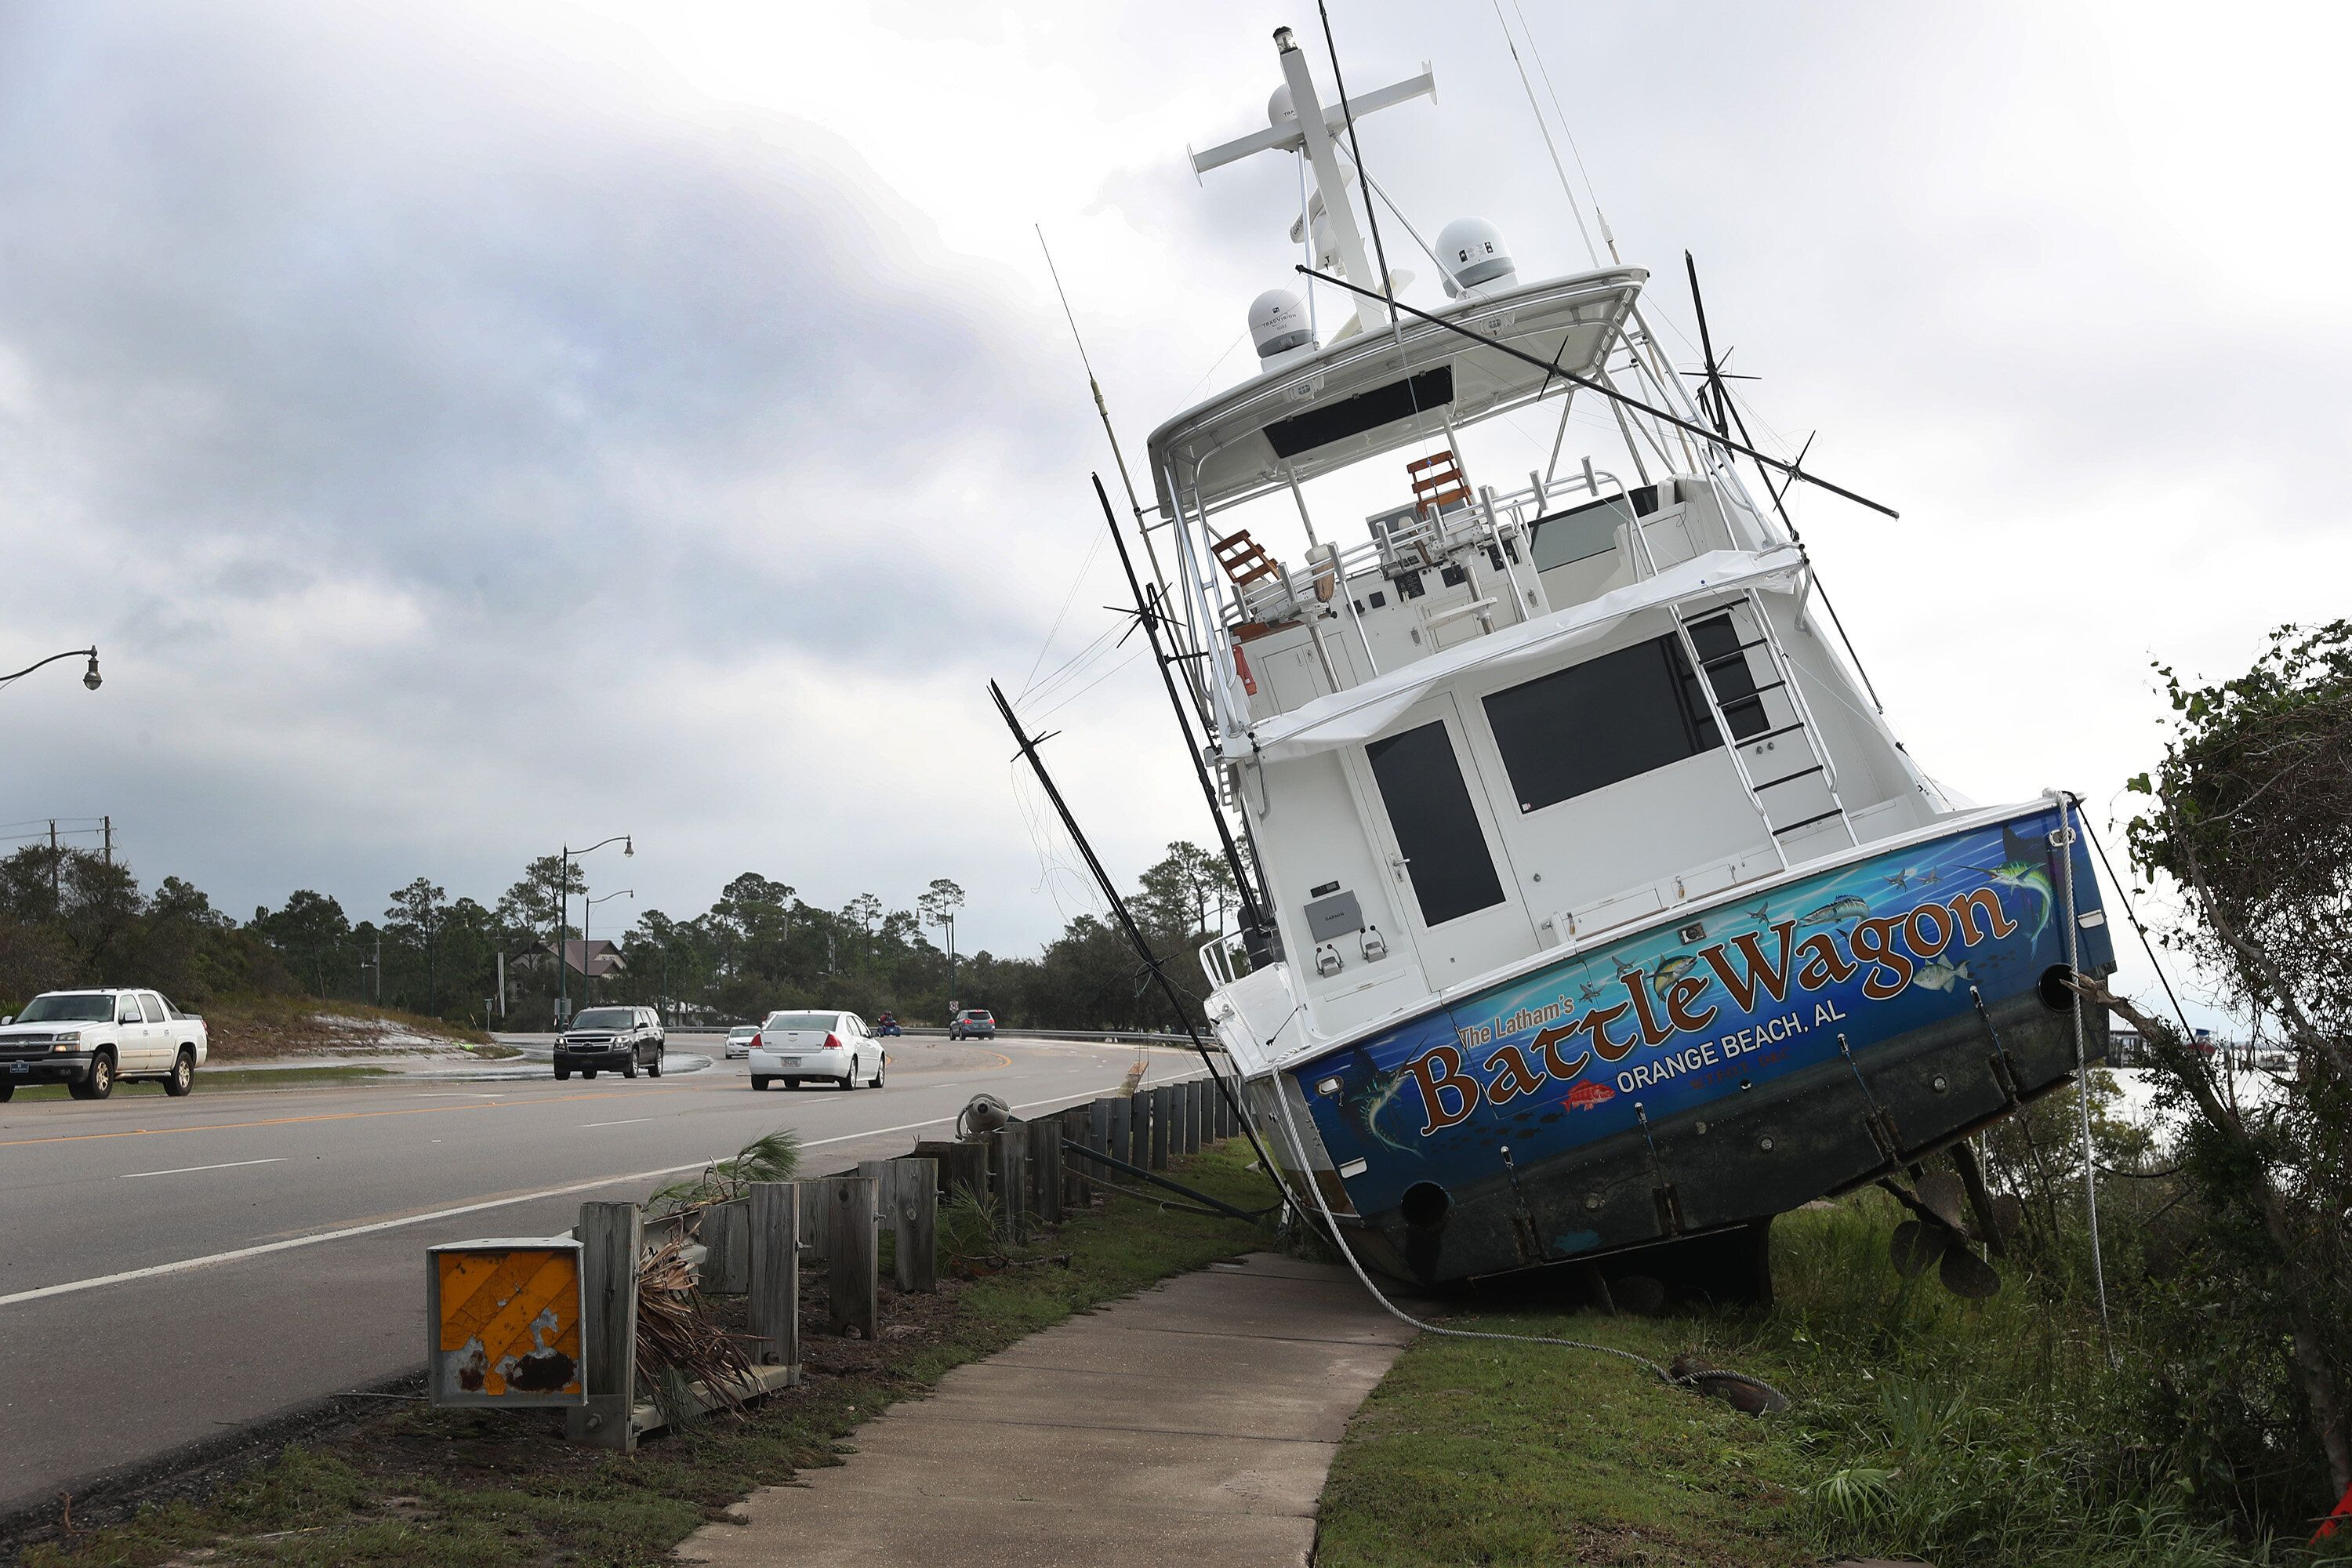 A boat is seen washed up on shore after Hurricane Sally.